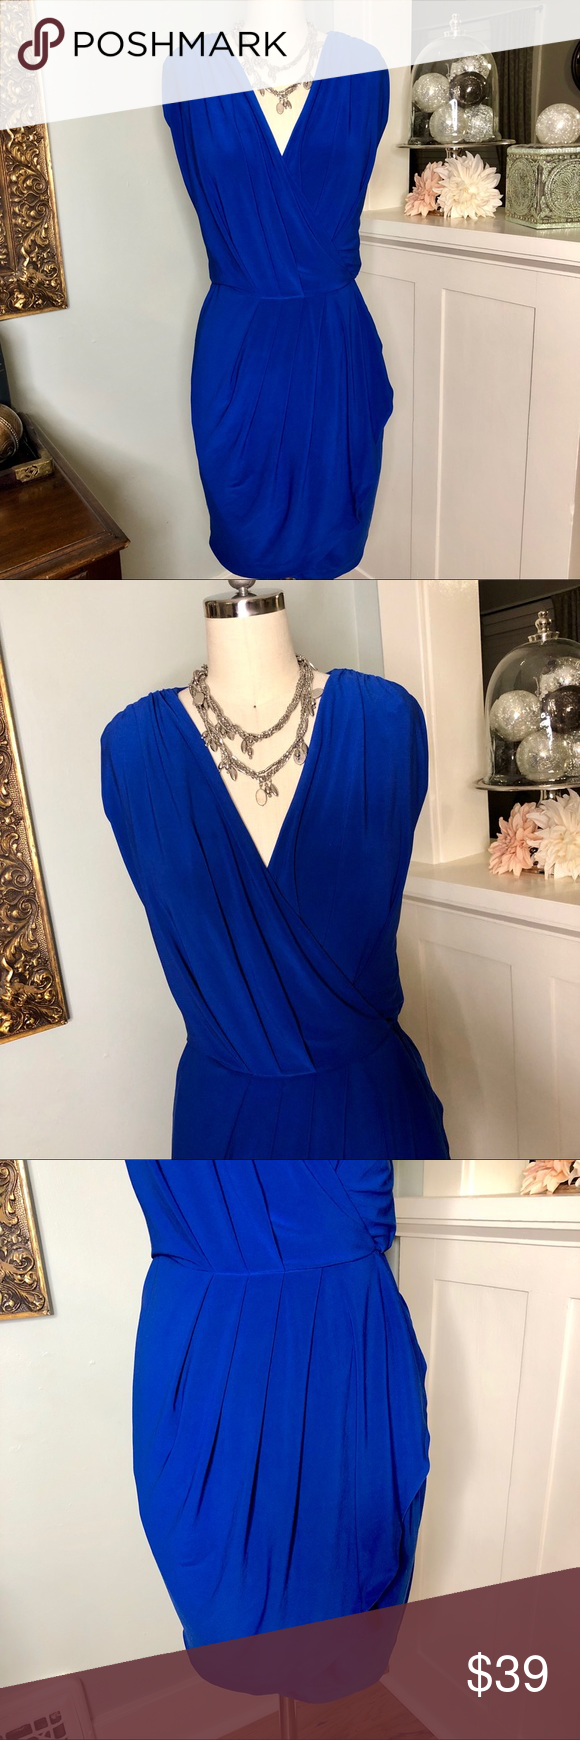 Vince Camuto Royal Blue Wrap Style Dress Clothes Design Types Of Fashion Styles Fashion Dresses [ 1740 x 580 Pixel ]